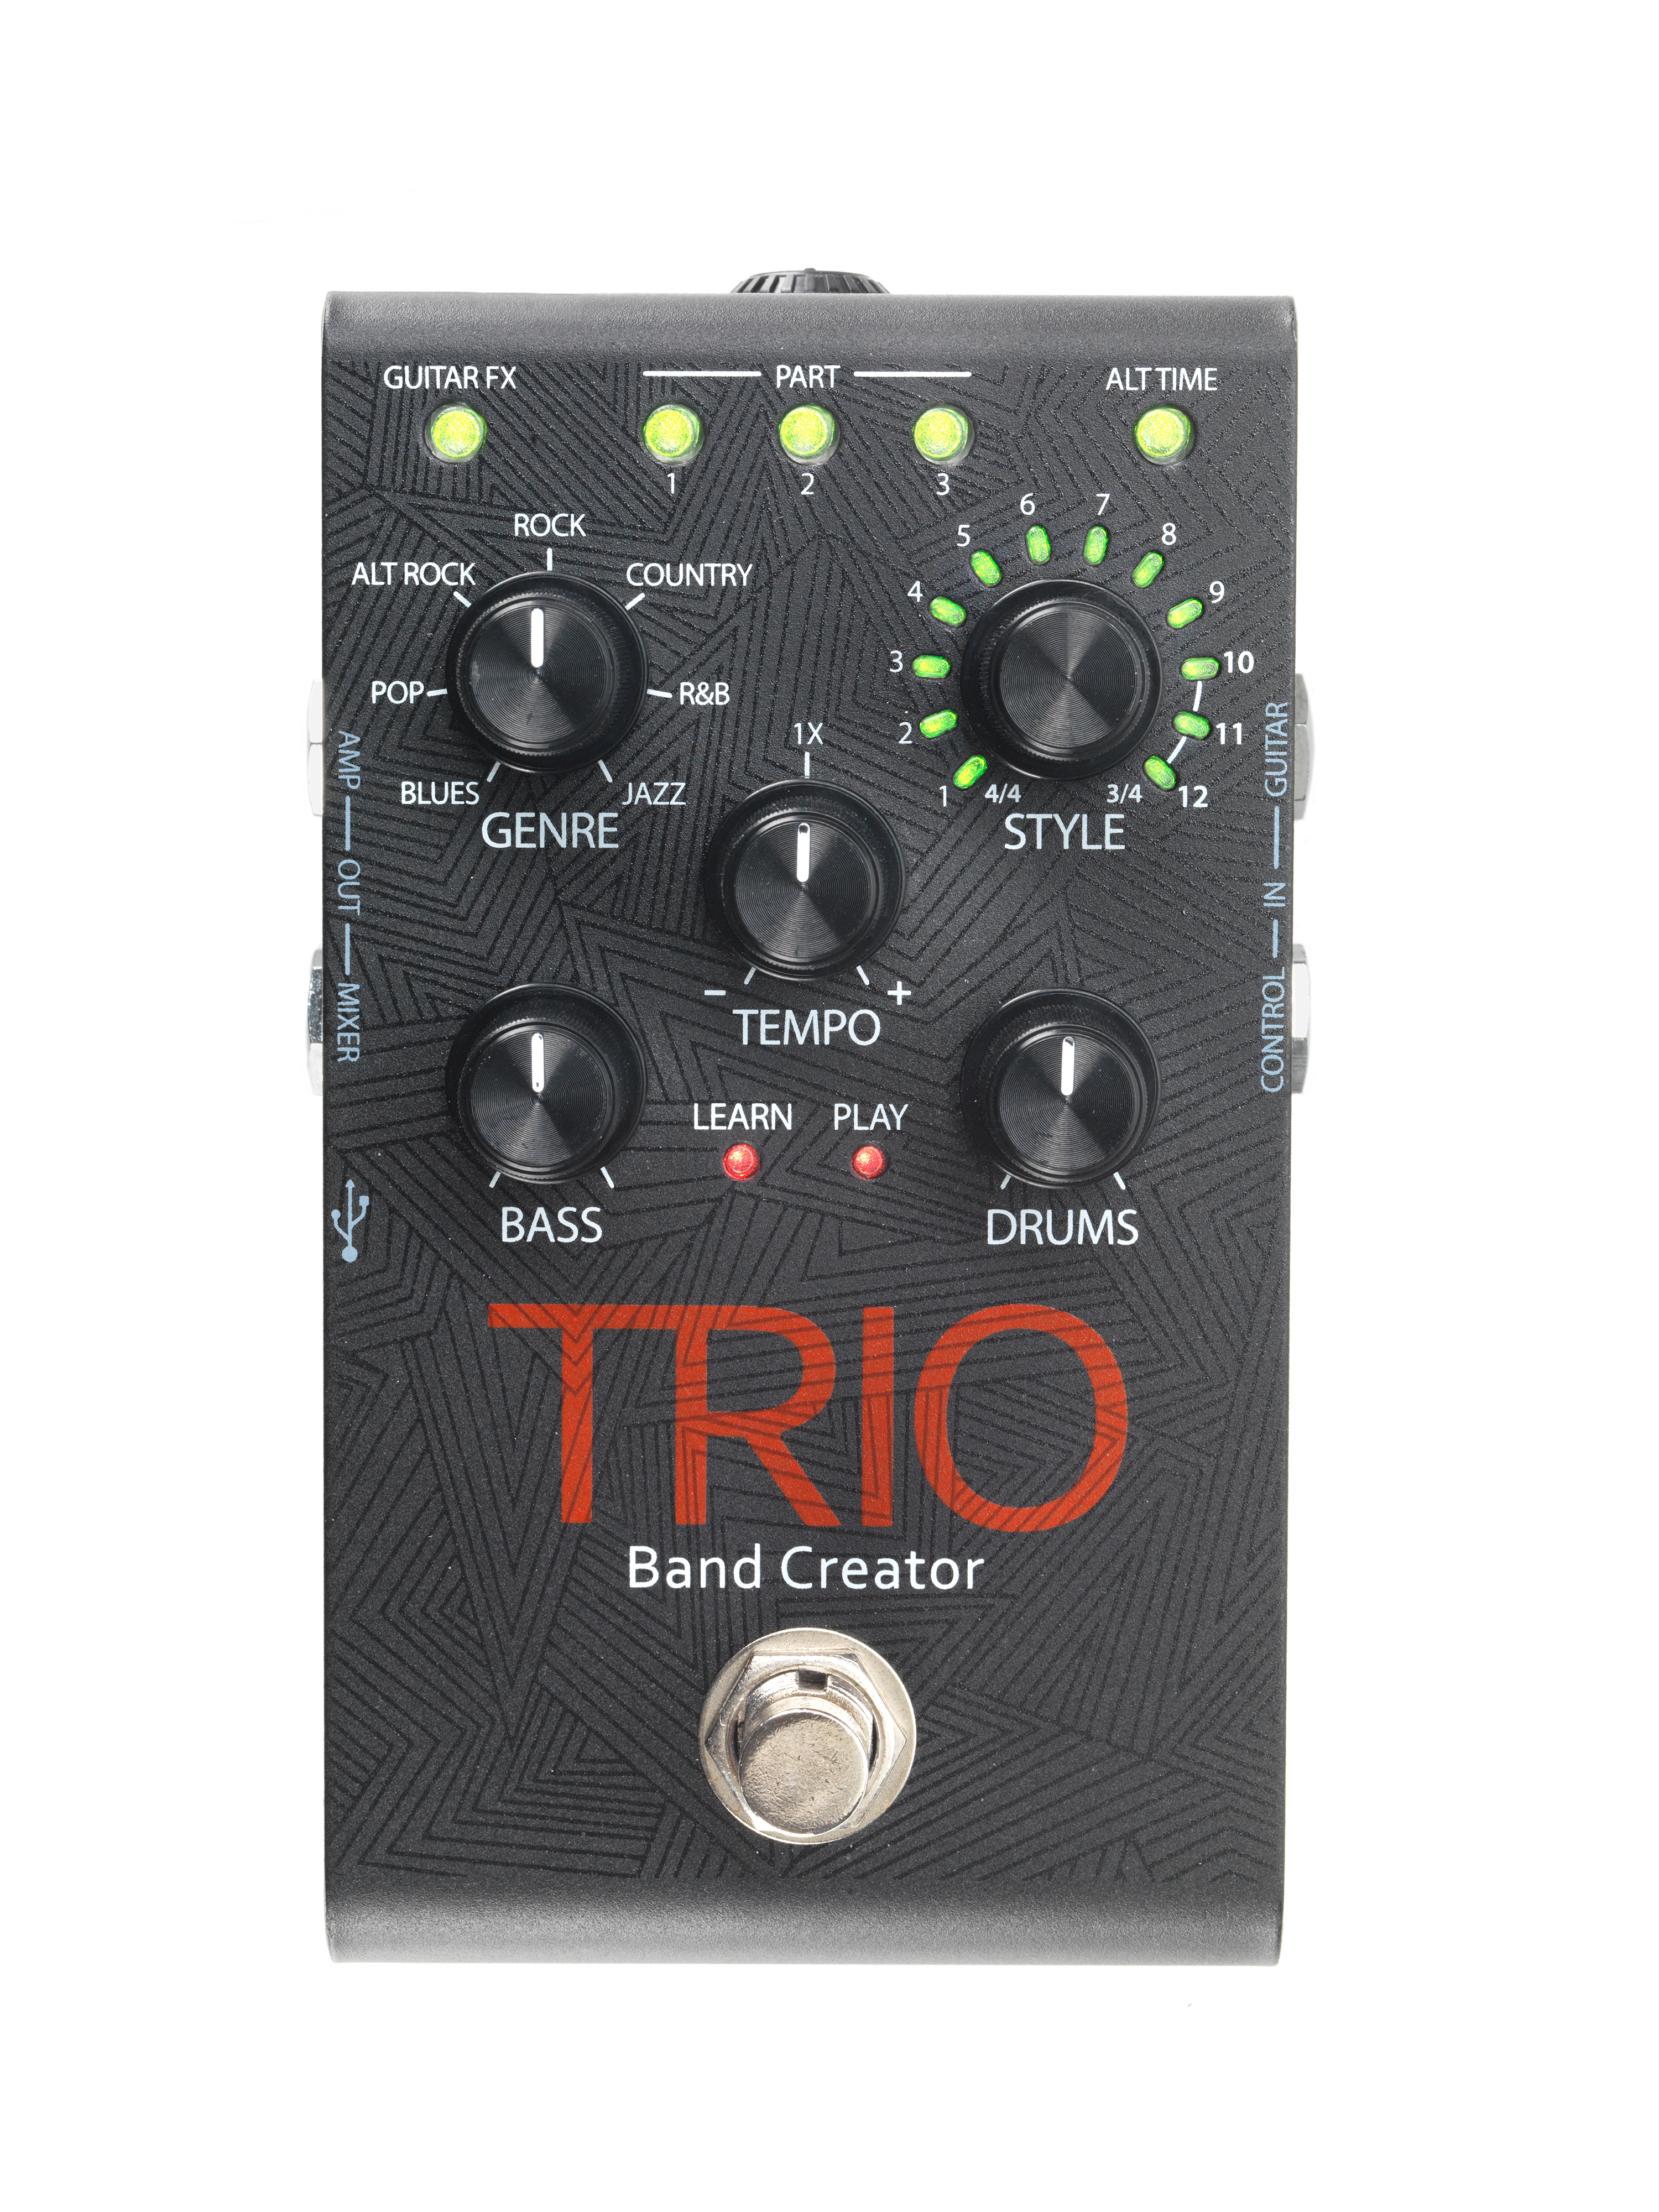 harman 39 s digitech introduces the trio band creator pedal from uk distributor sound technology ltd. Black Bedroom Furniture Sets. Home Design Ideas